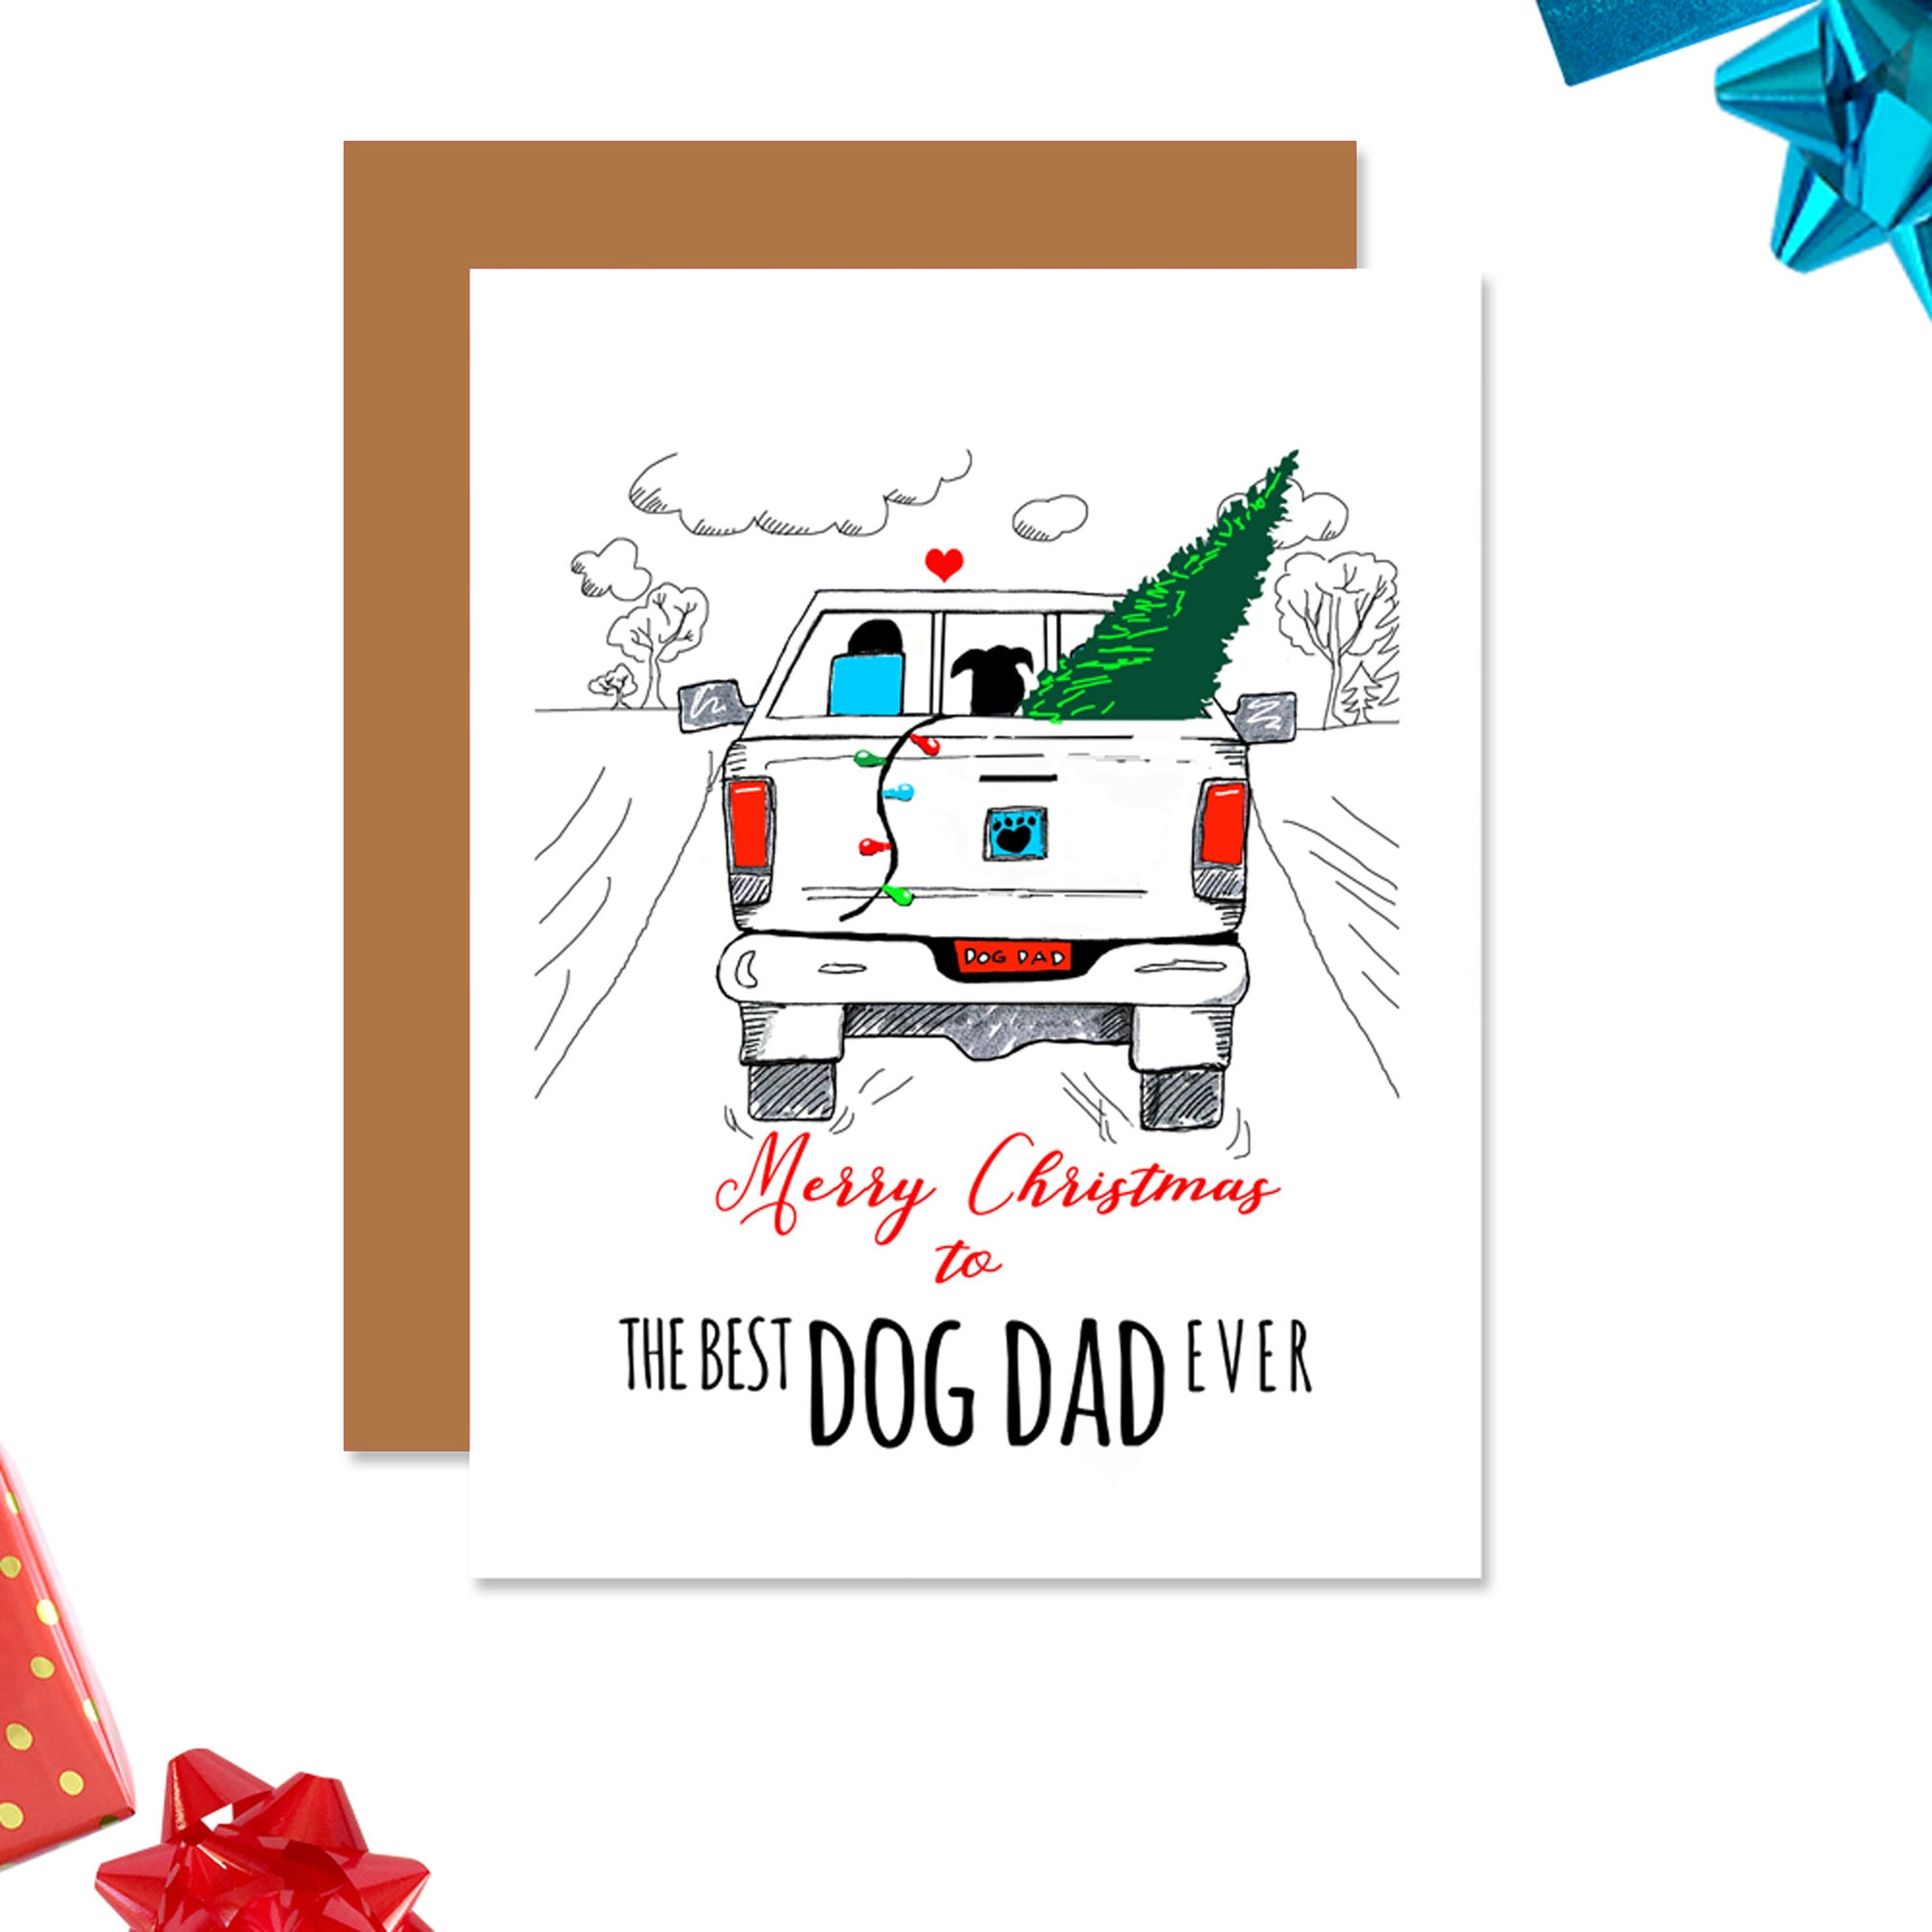 Best Dog Dad Ever - Christmas Card